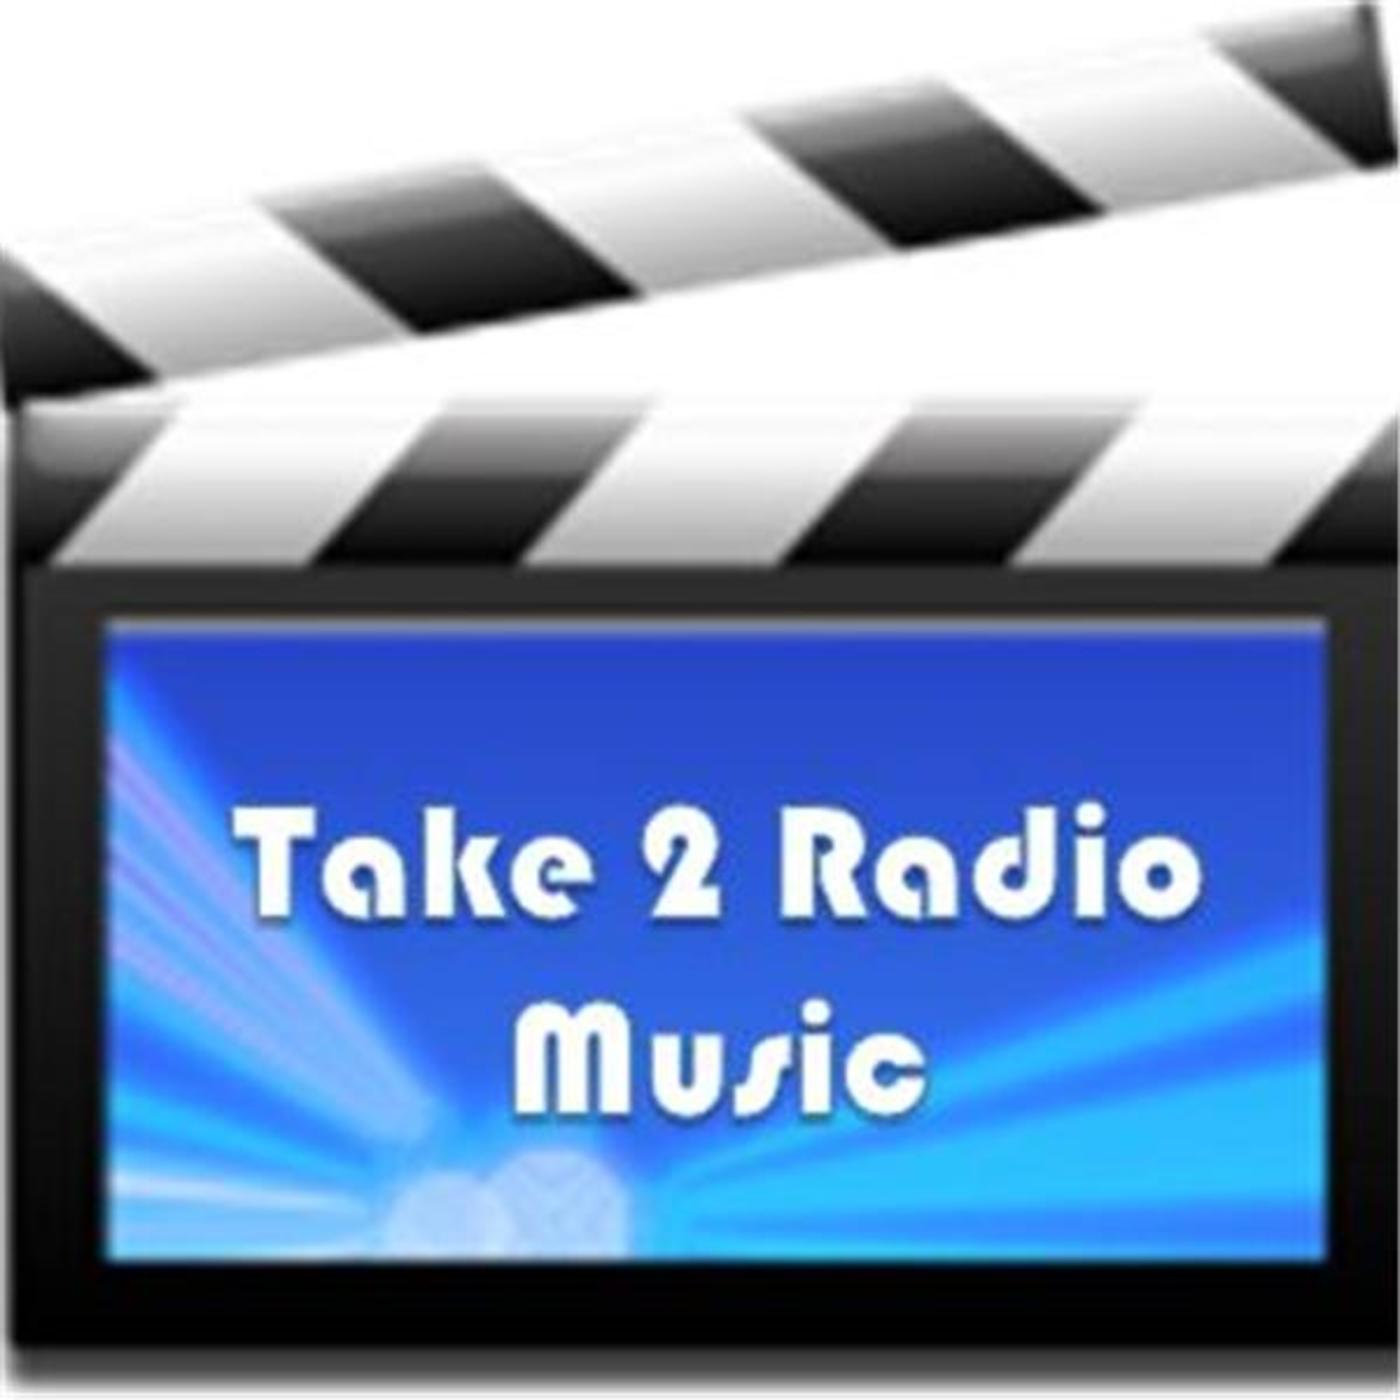 Take 2 Radio Music